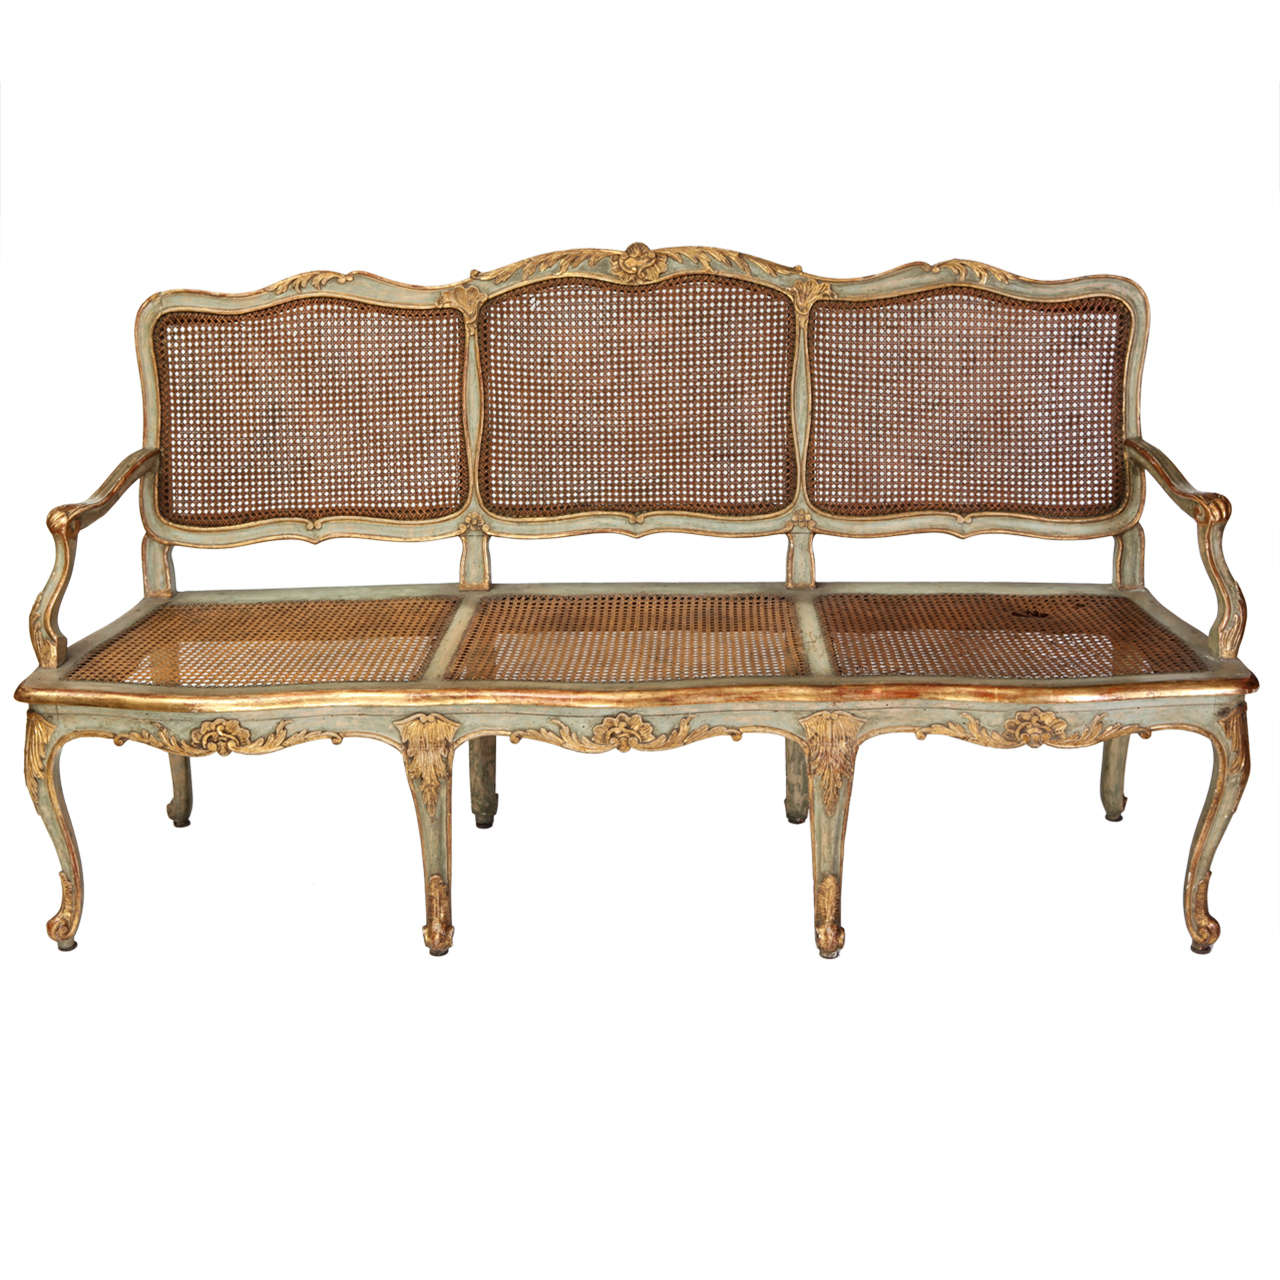 Fine Italian 18th Century Parcel-Gilt and Painted Canape